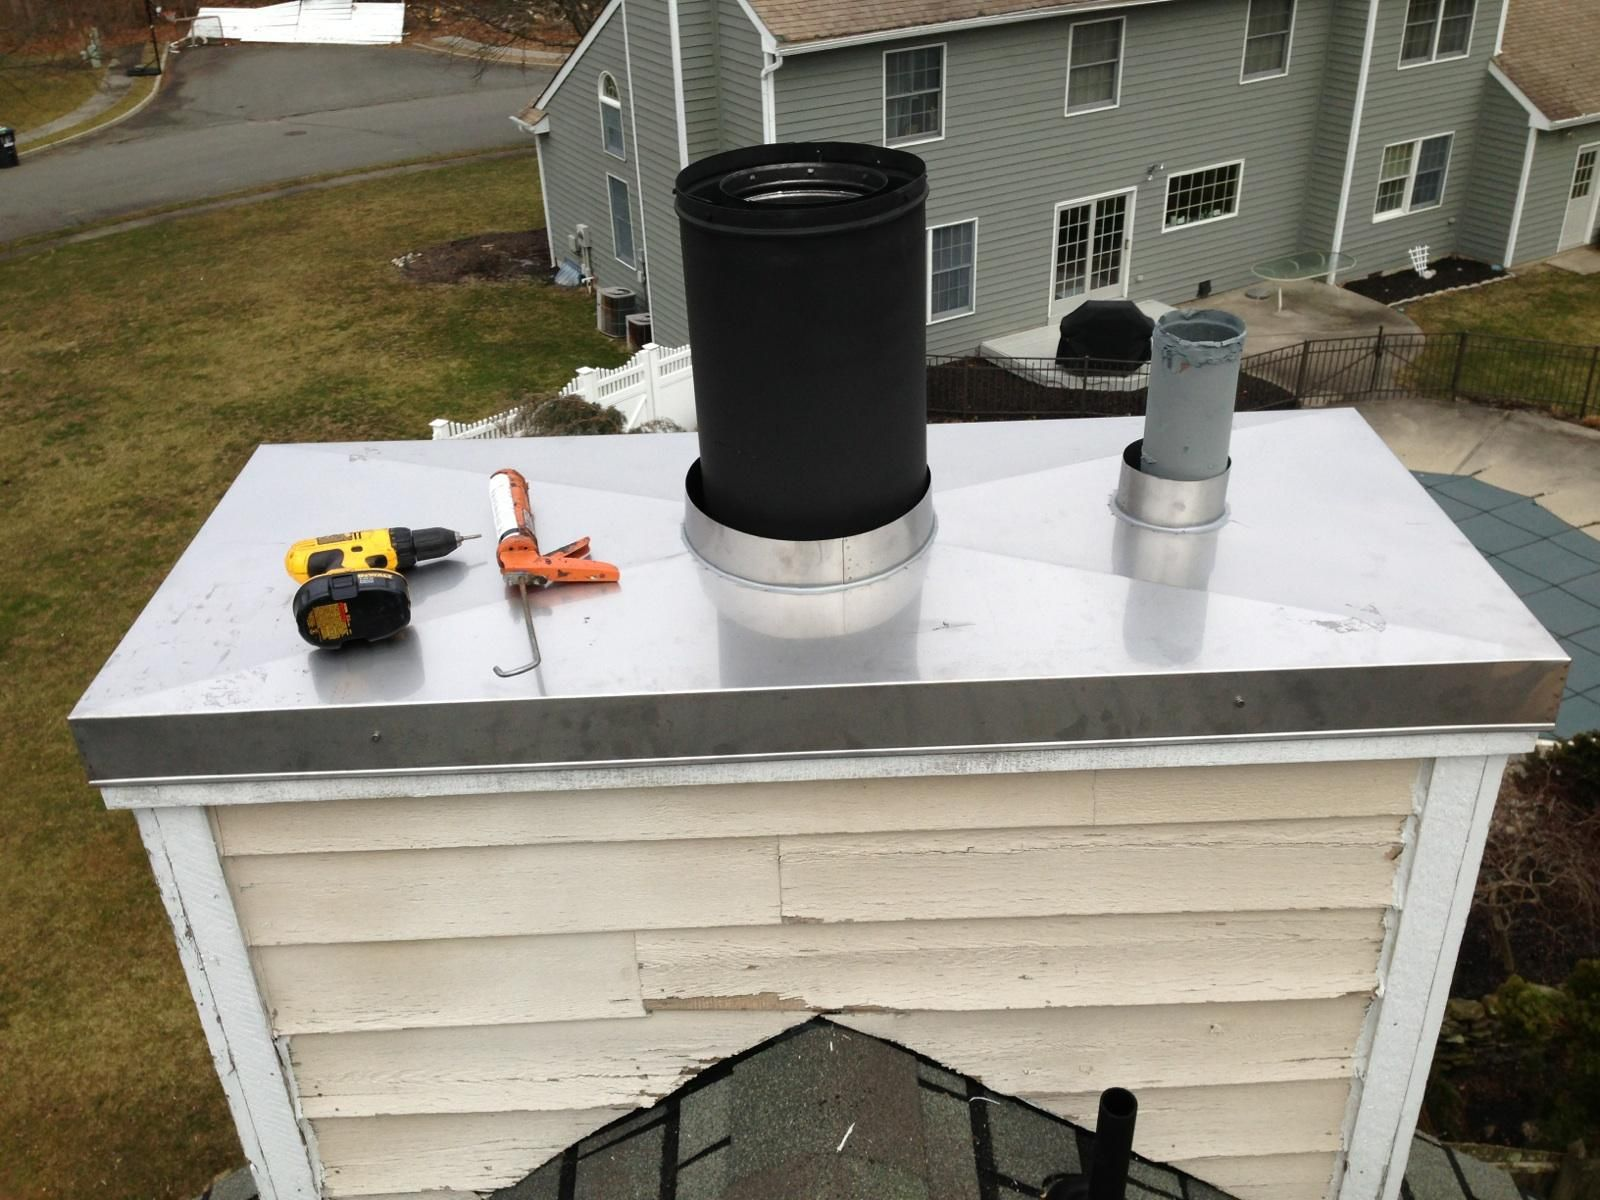 Carlin Chimney Safe And Secure In 2019 Chimney Cap